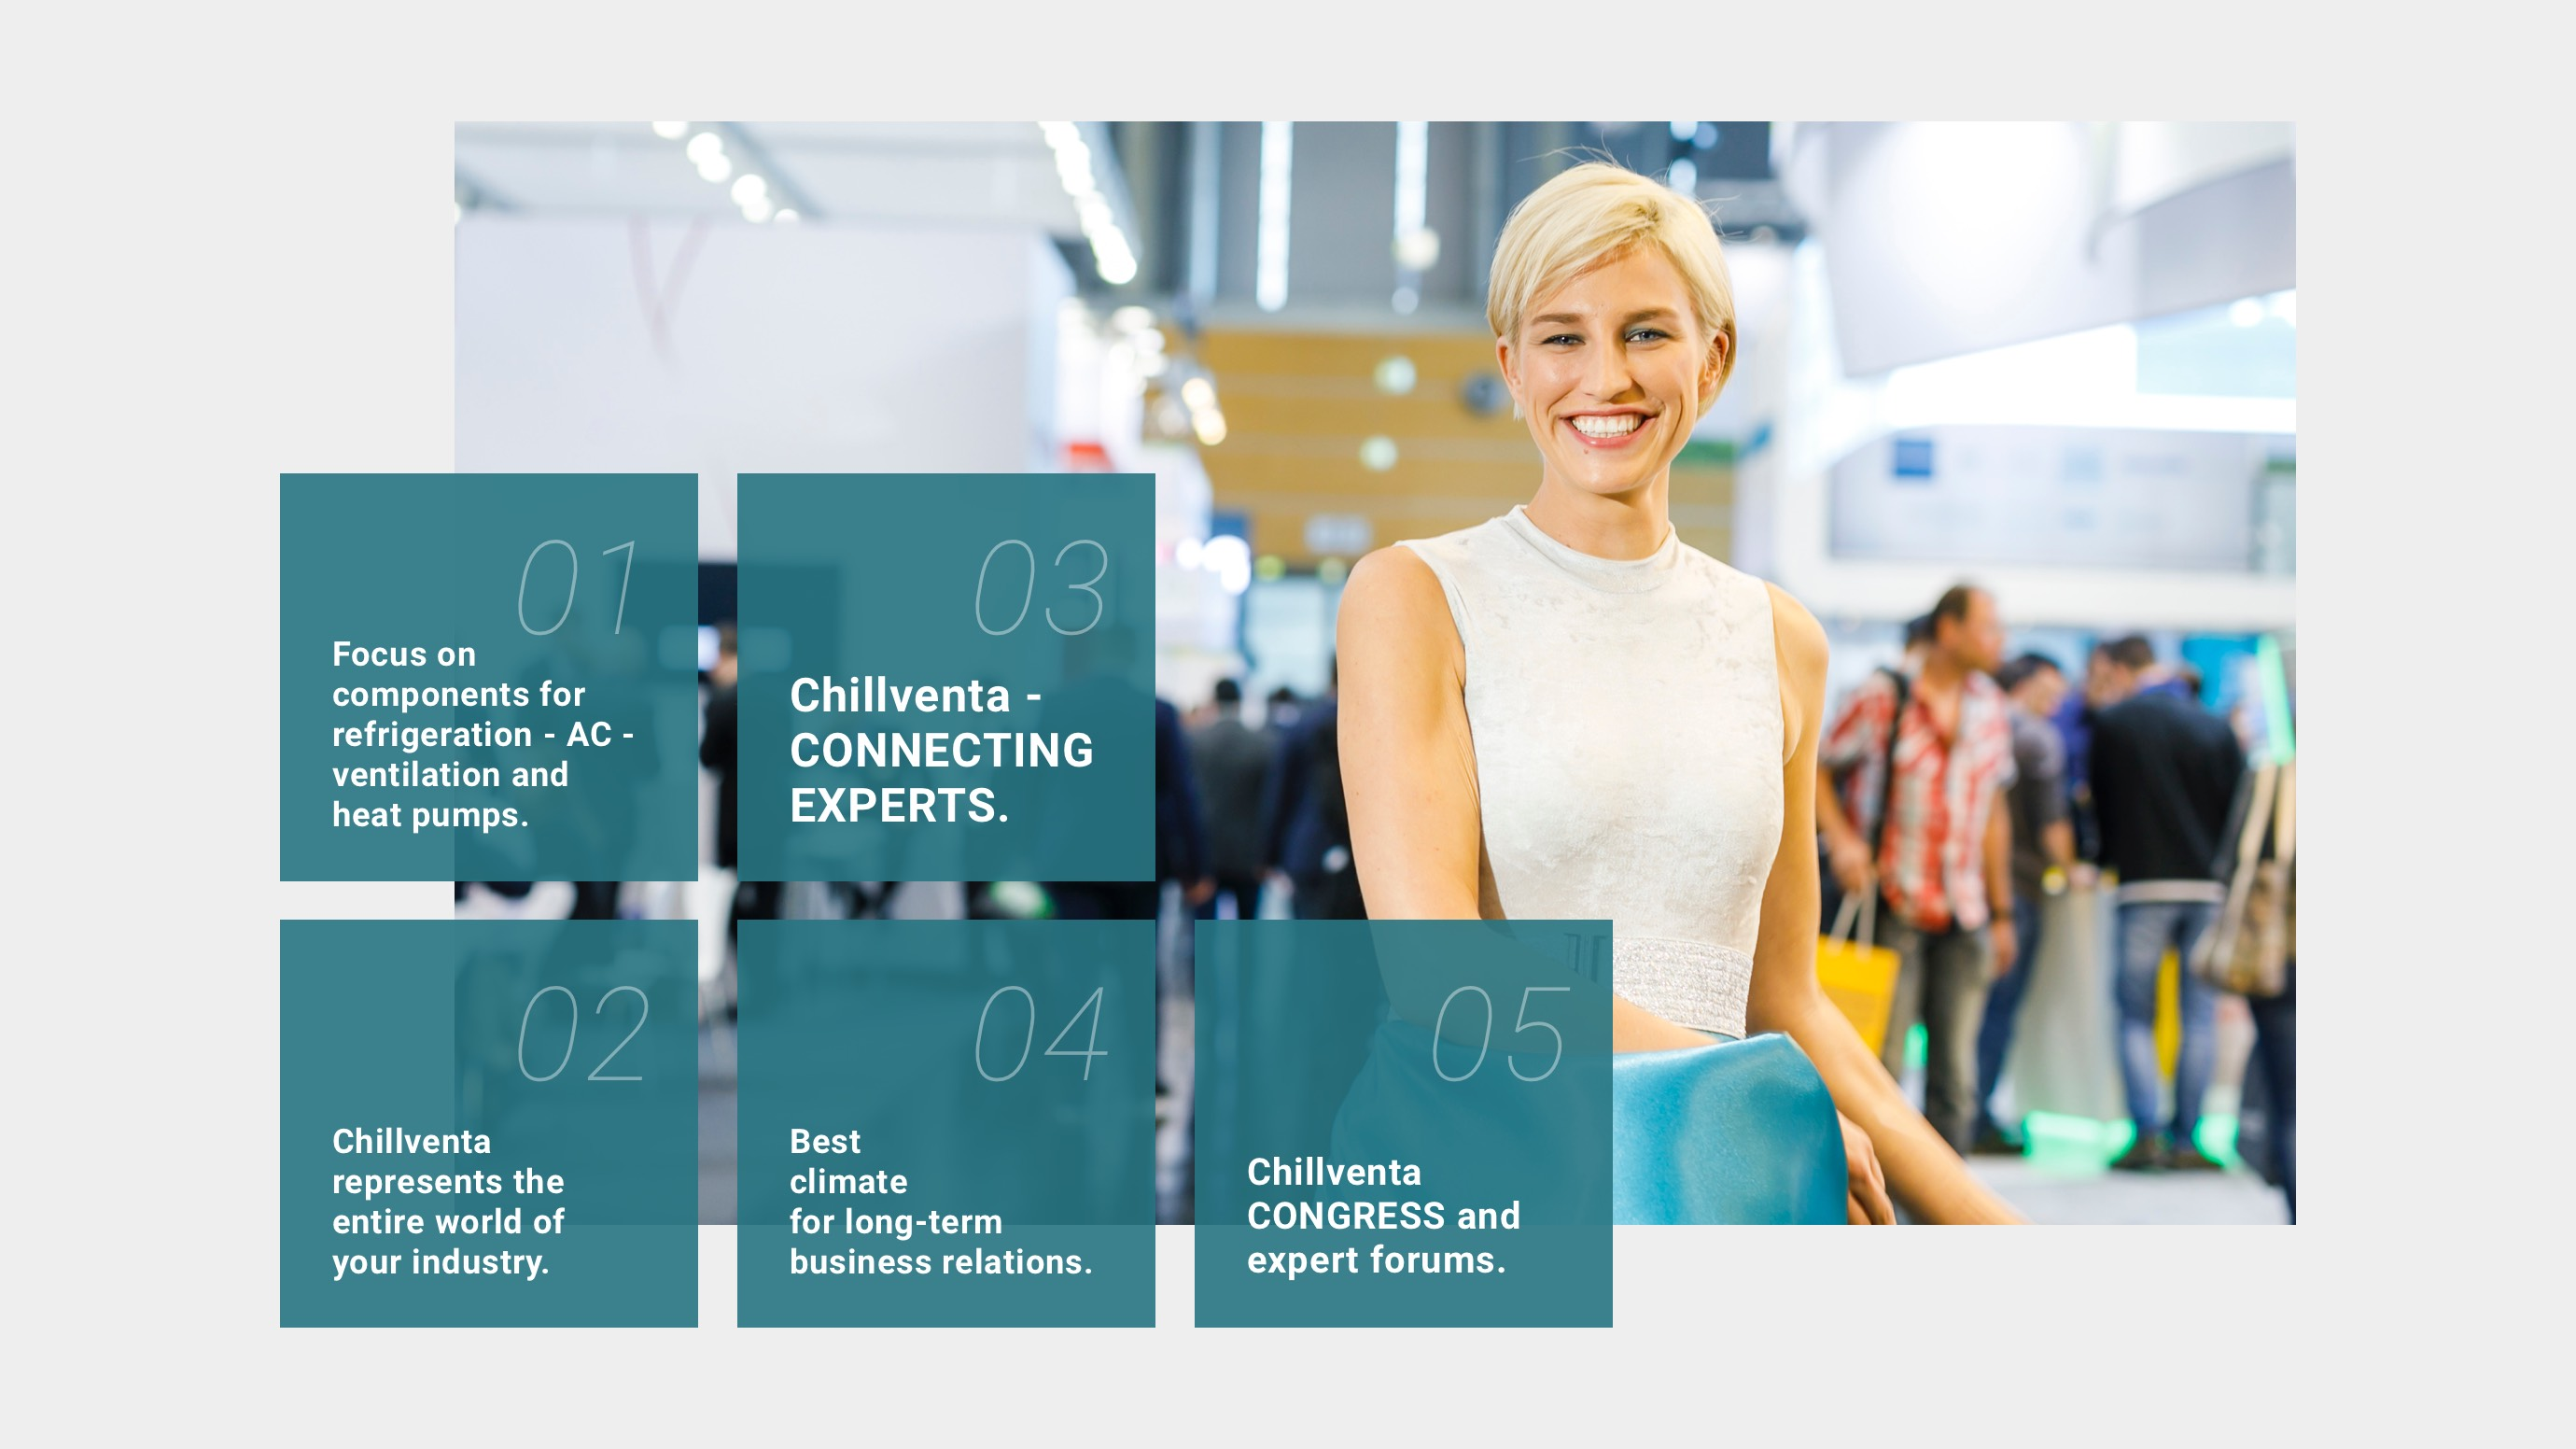 Infographic on five reasons to visit Chillventa: 1. Focus on components for refrigeration – AC - ventilation and heat pumps. 2. Chillventa represents the entire world of your industry. 3. Chillventa – CONNECTING EXPERTS. 4. Chillventa CONGRESS and expert forums.